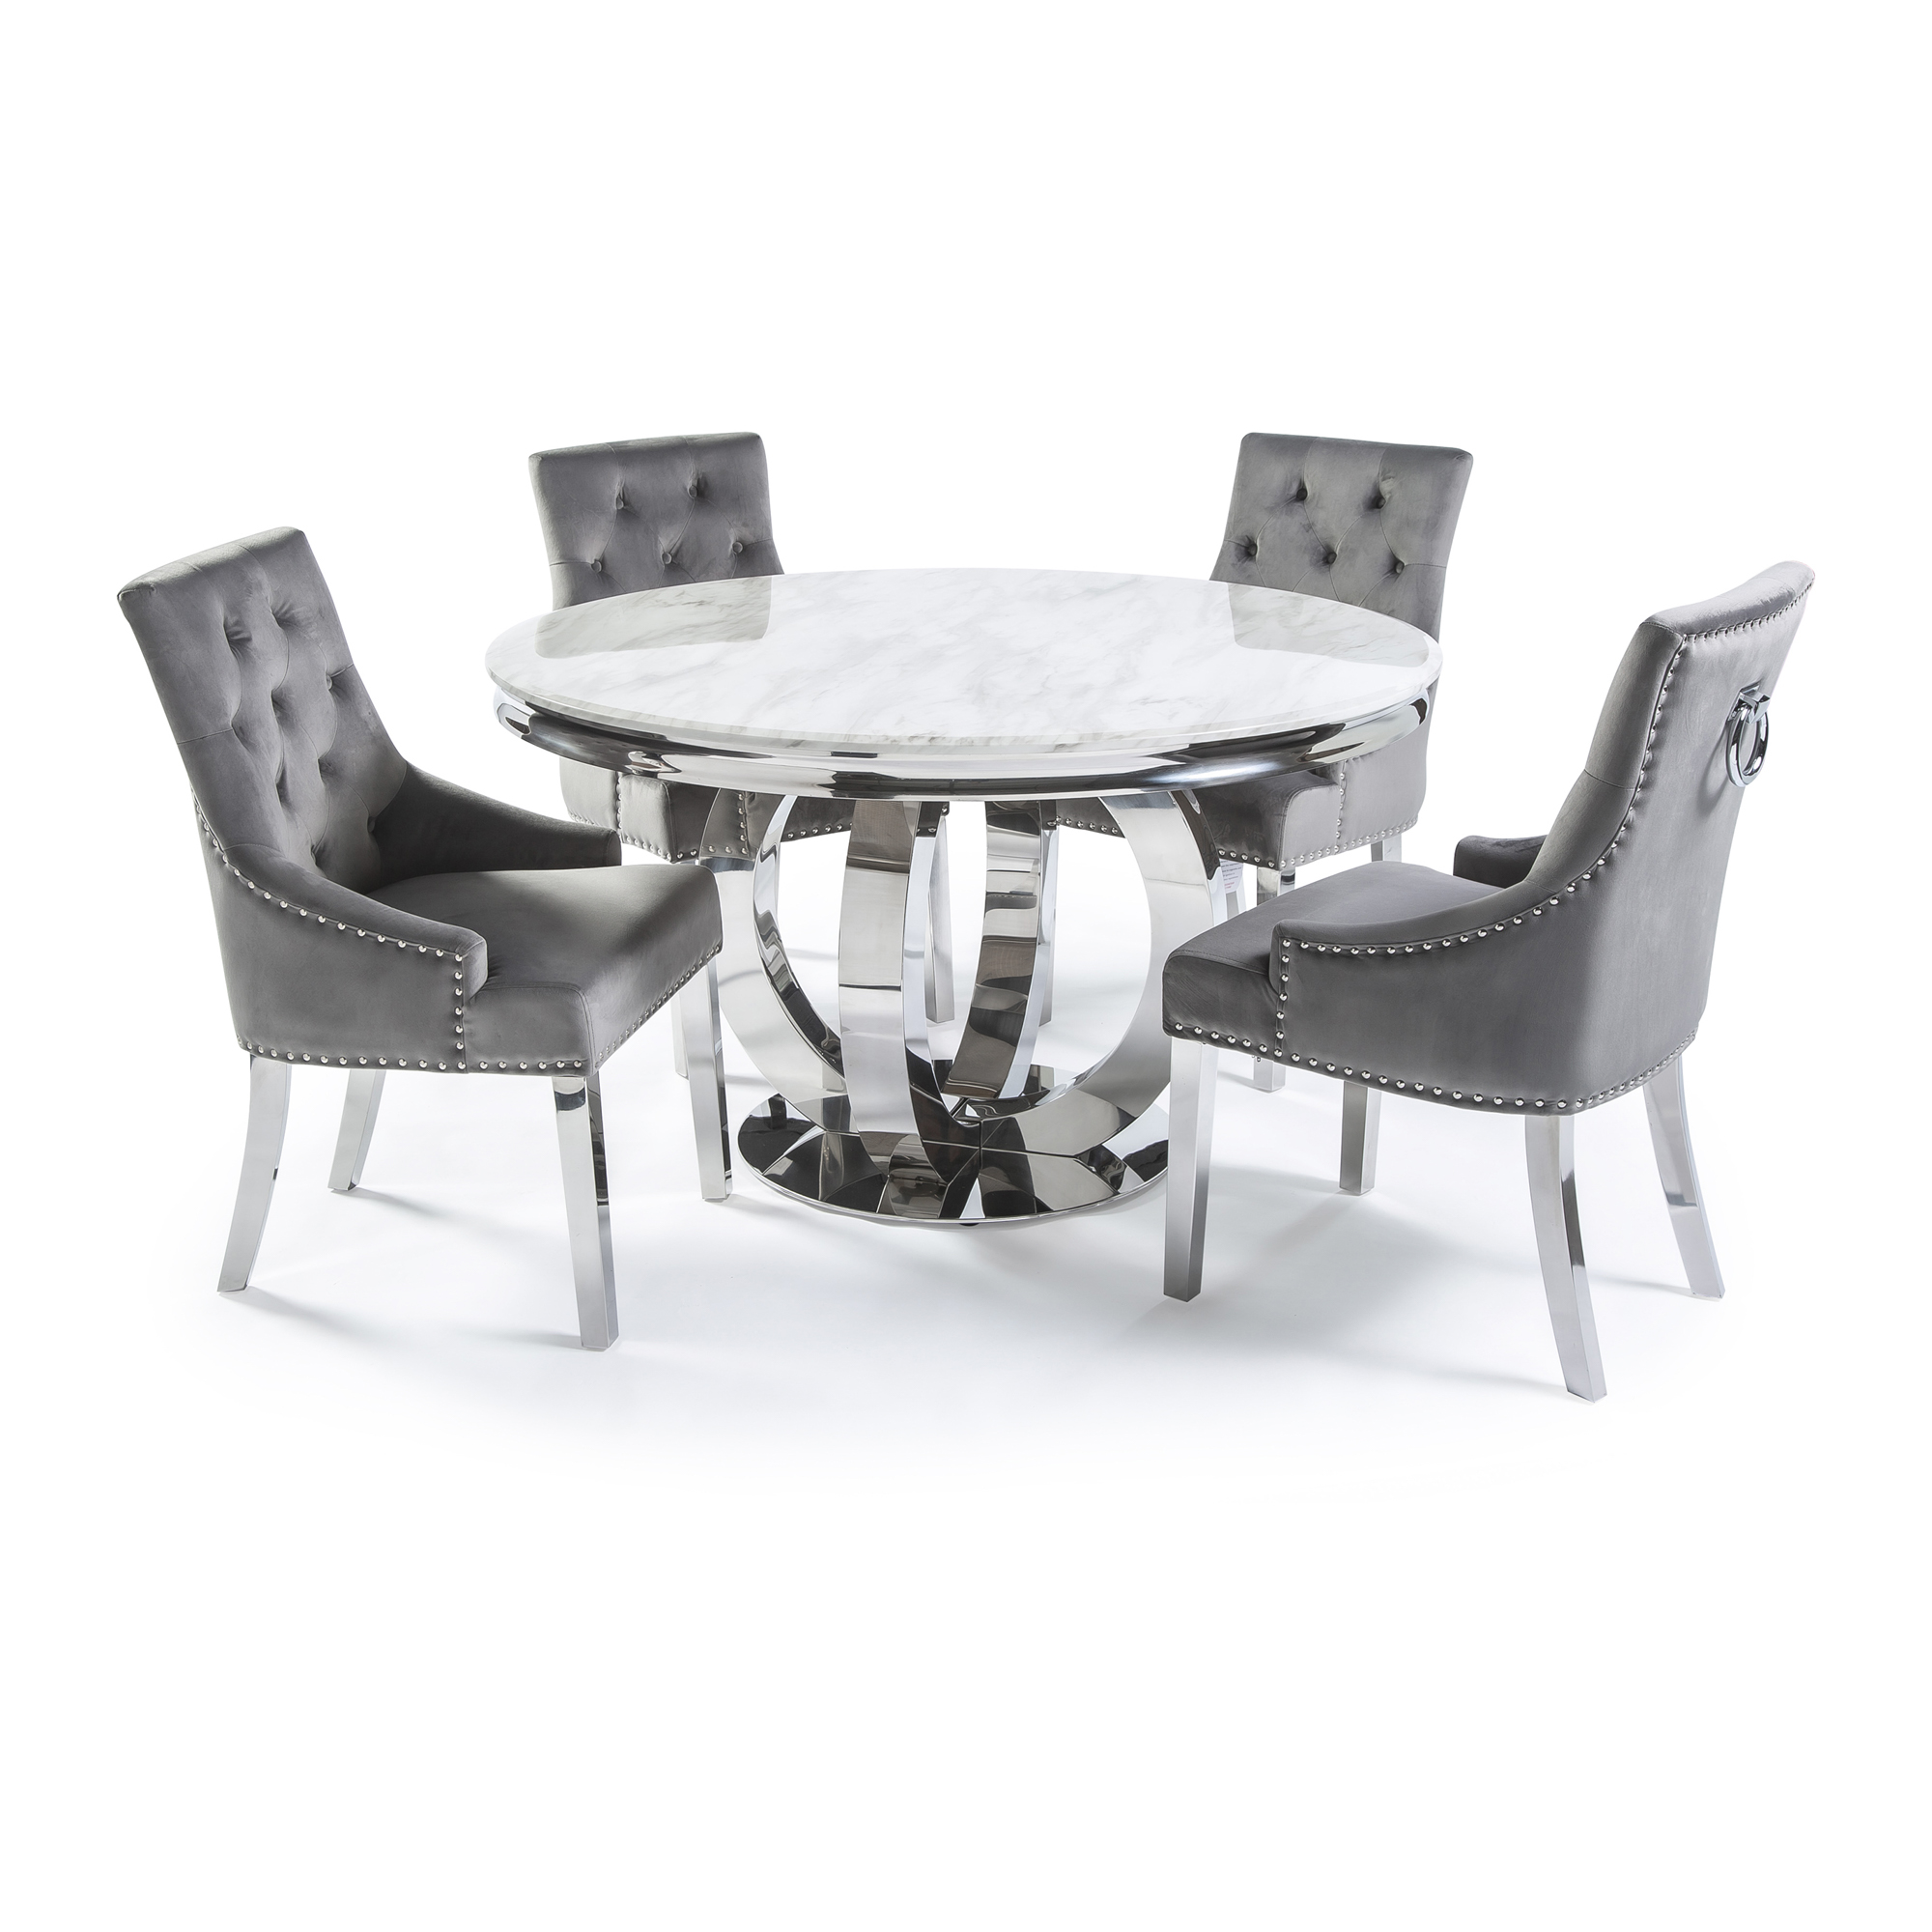 1.3m Circular Polished Steel Dining White Marble Table Set with 4 Grey Brushed Velvet Dining Chairs